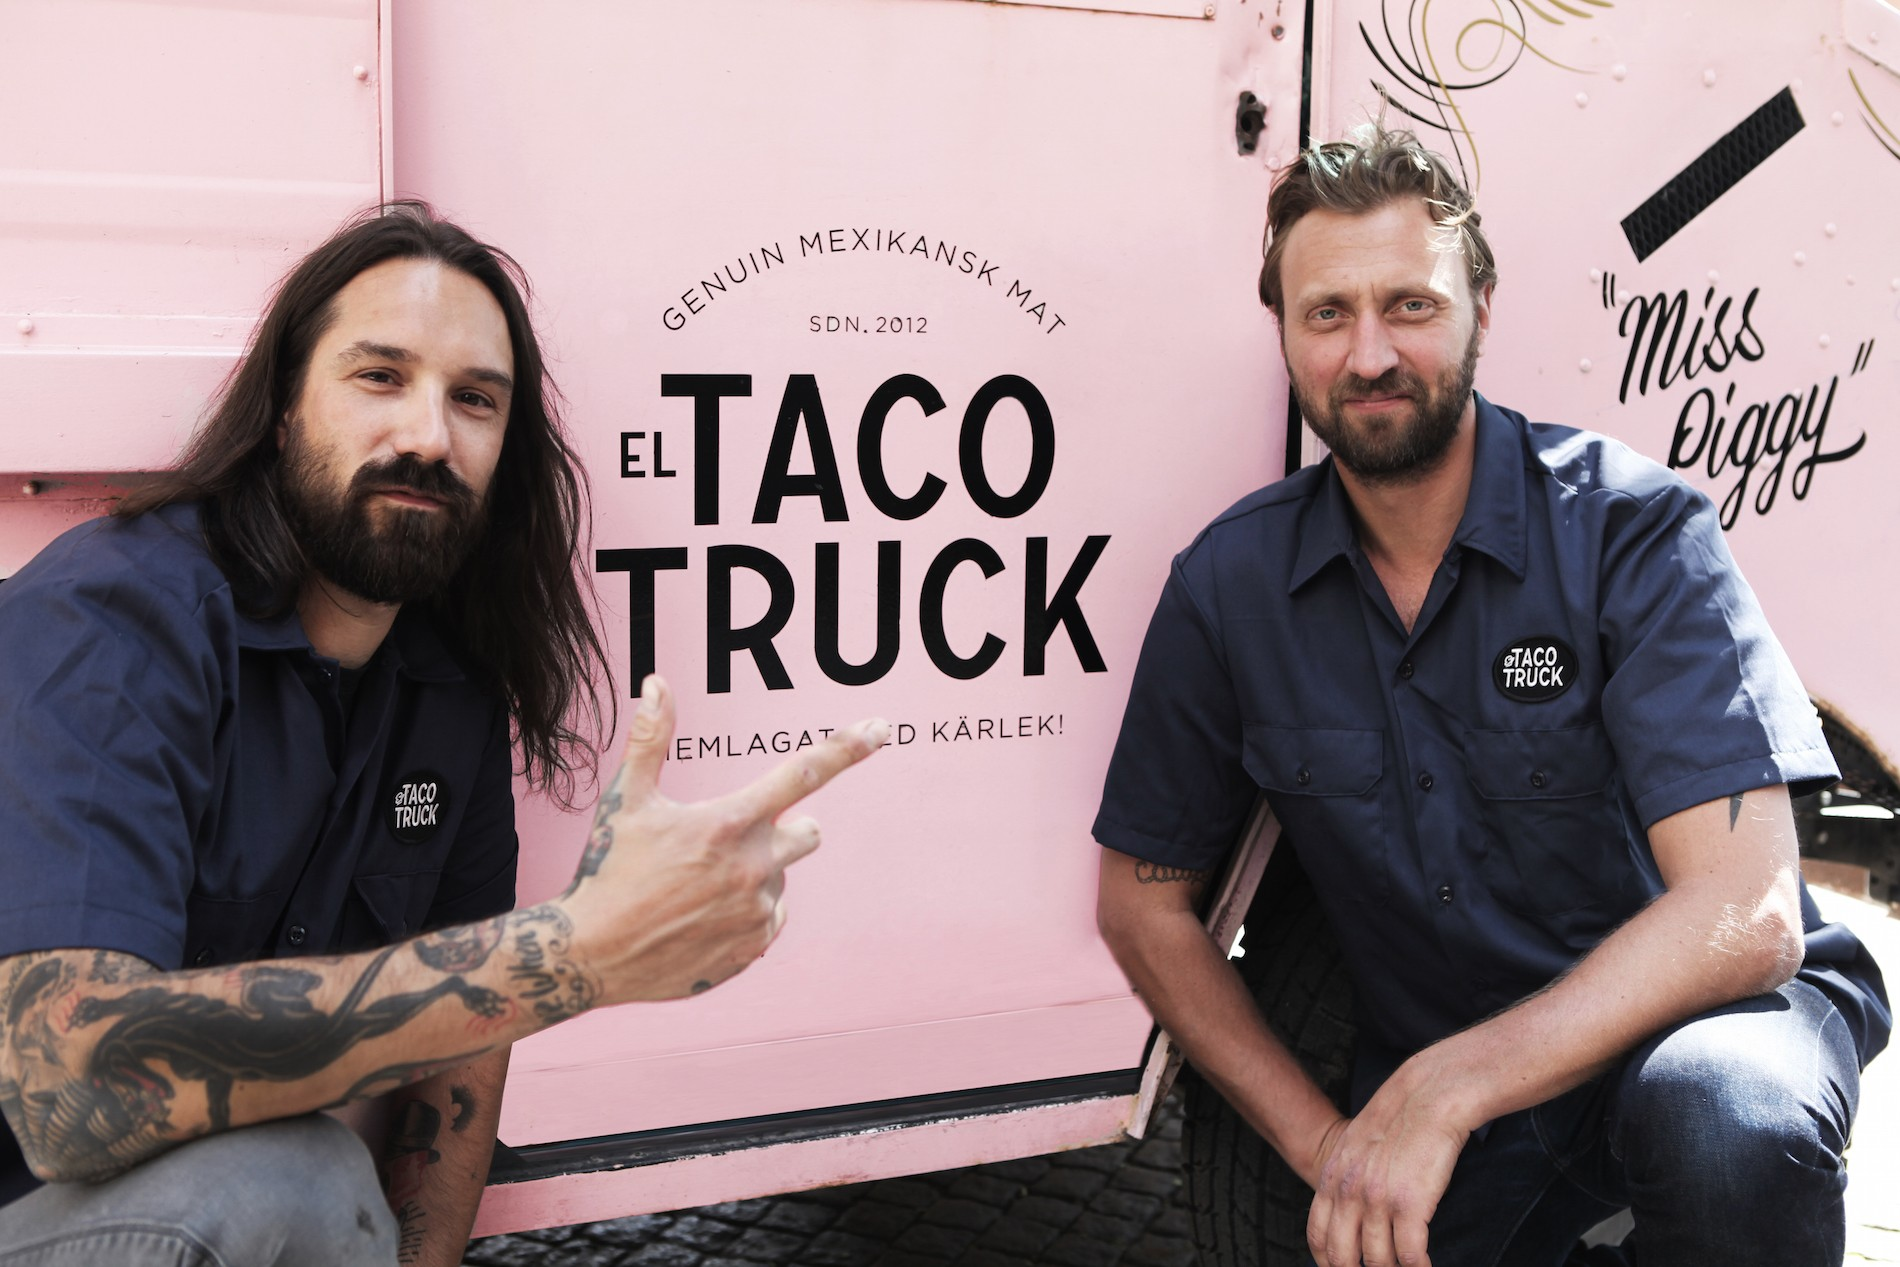 Photo via El Taco Truck